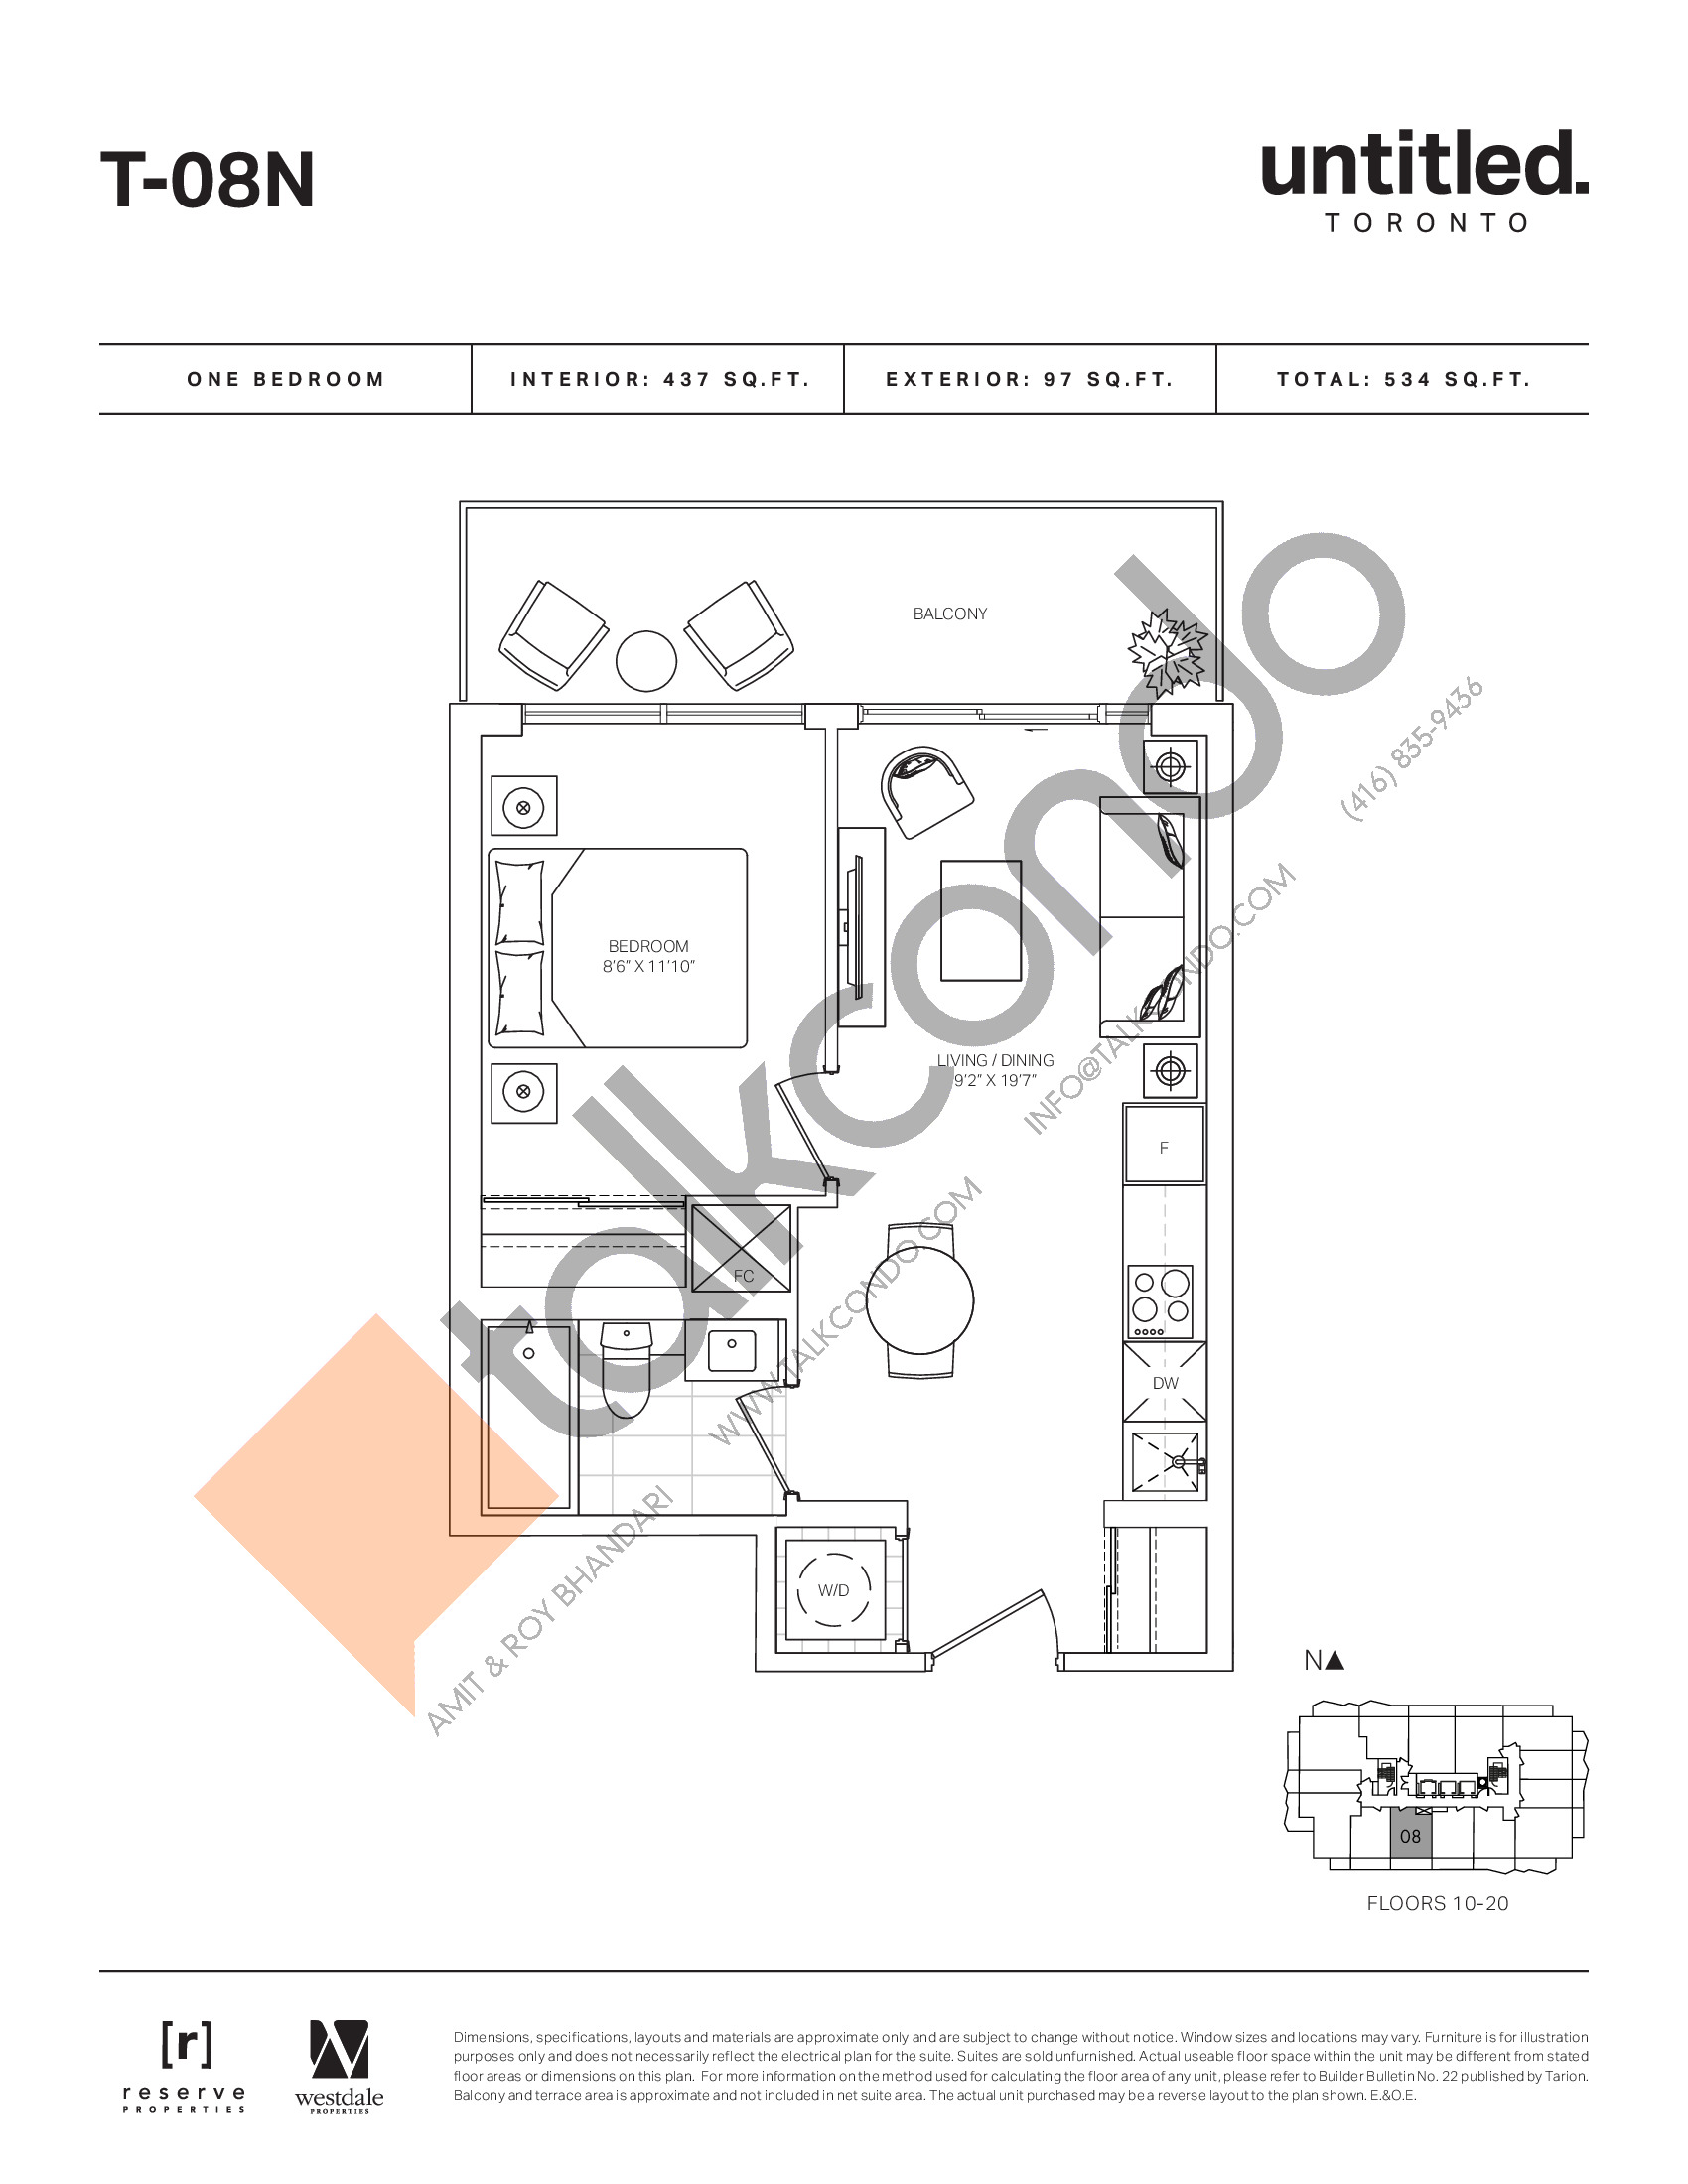 T-08N Floor Plan at Untitled North Tower Condos - 437 sq.ft